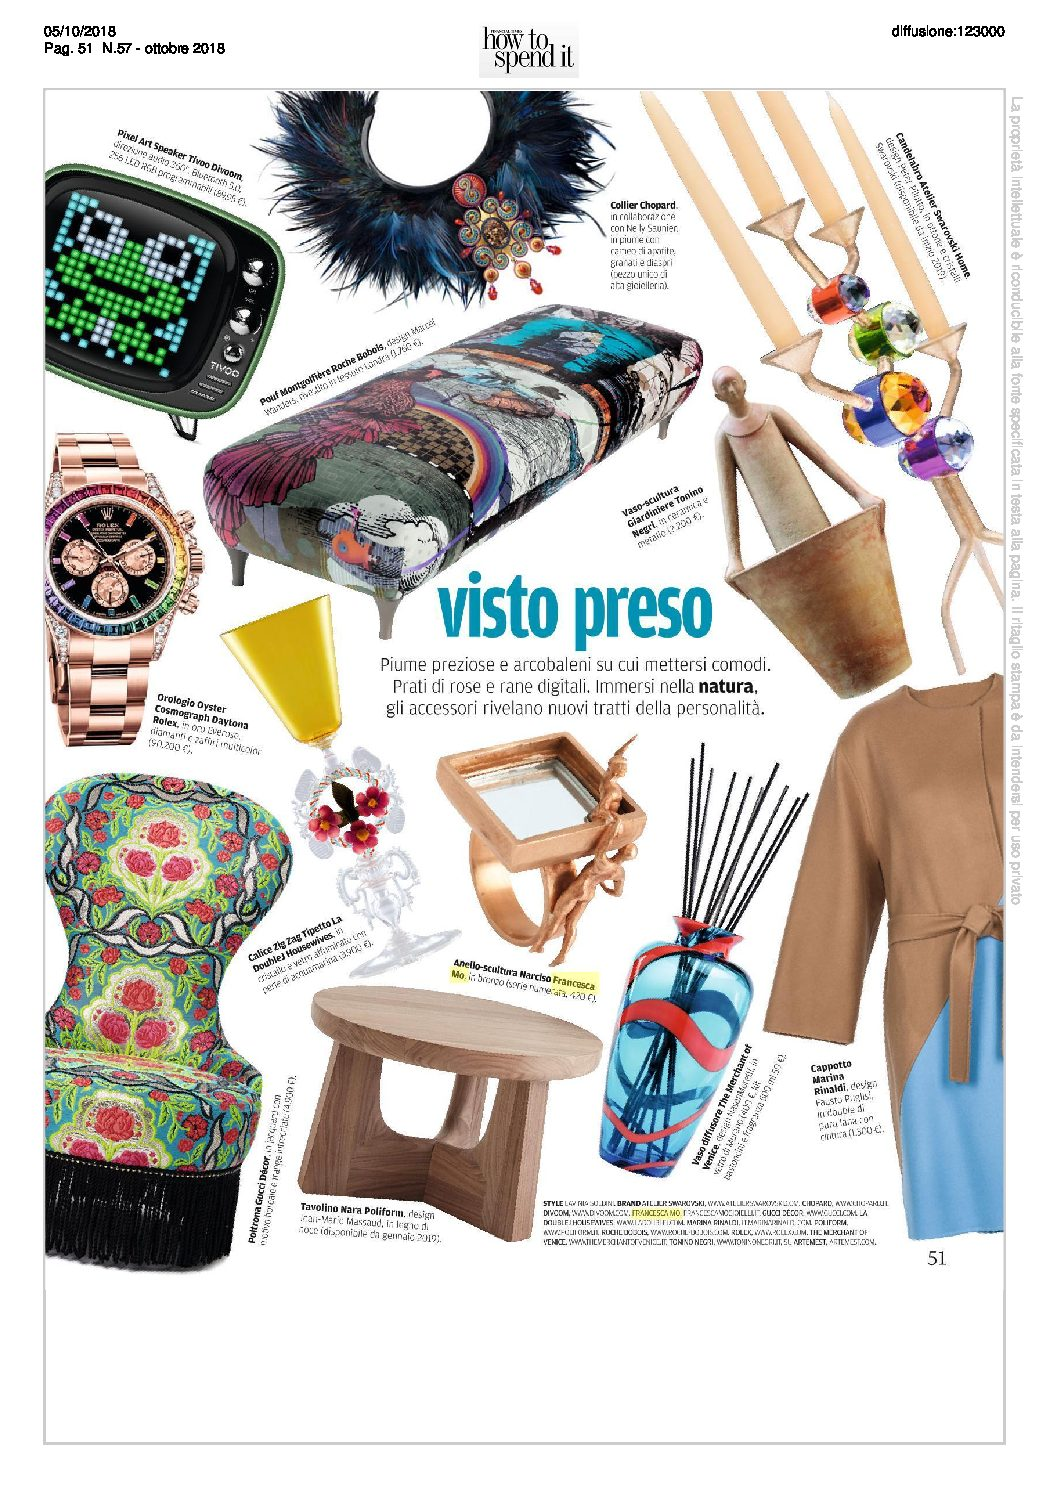 SOLE 24ORE How To Spend It